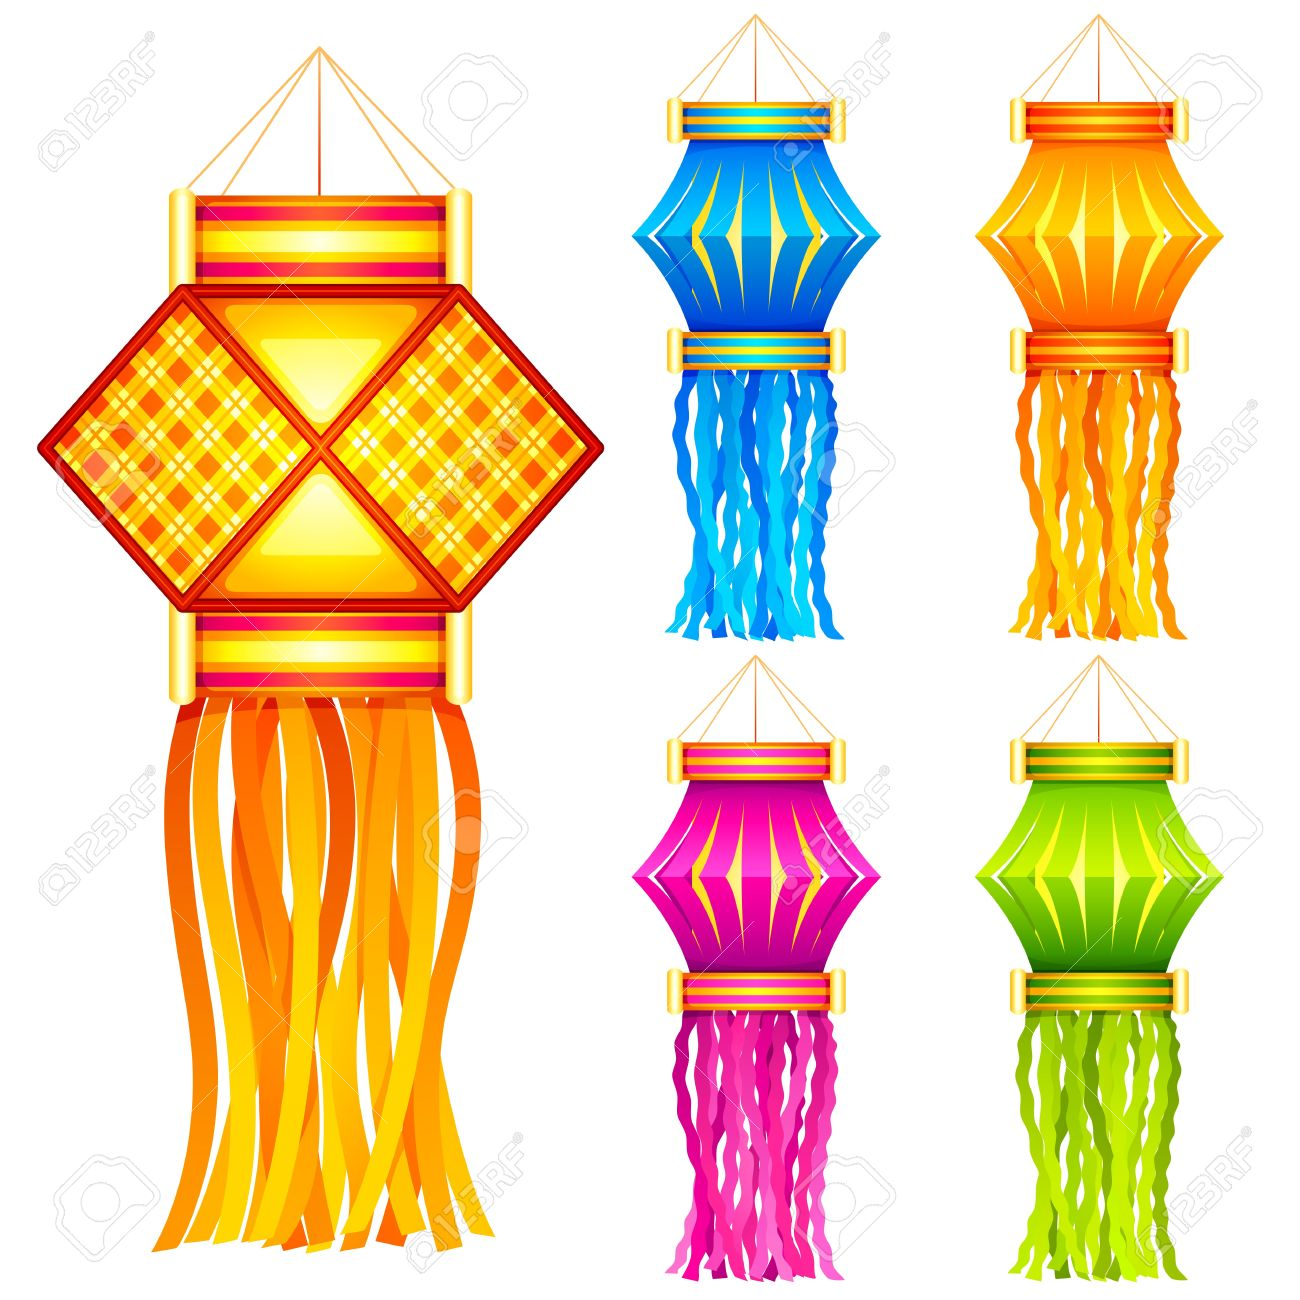 1300x1300 Diwali Hanging Lantern Royalty Free Cliparts, Vectors, And Stock